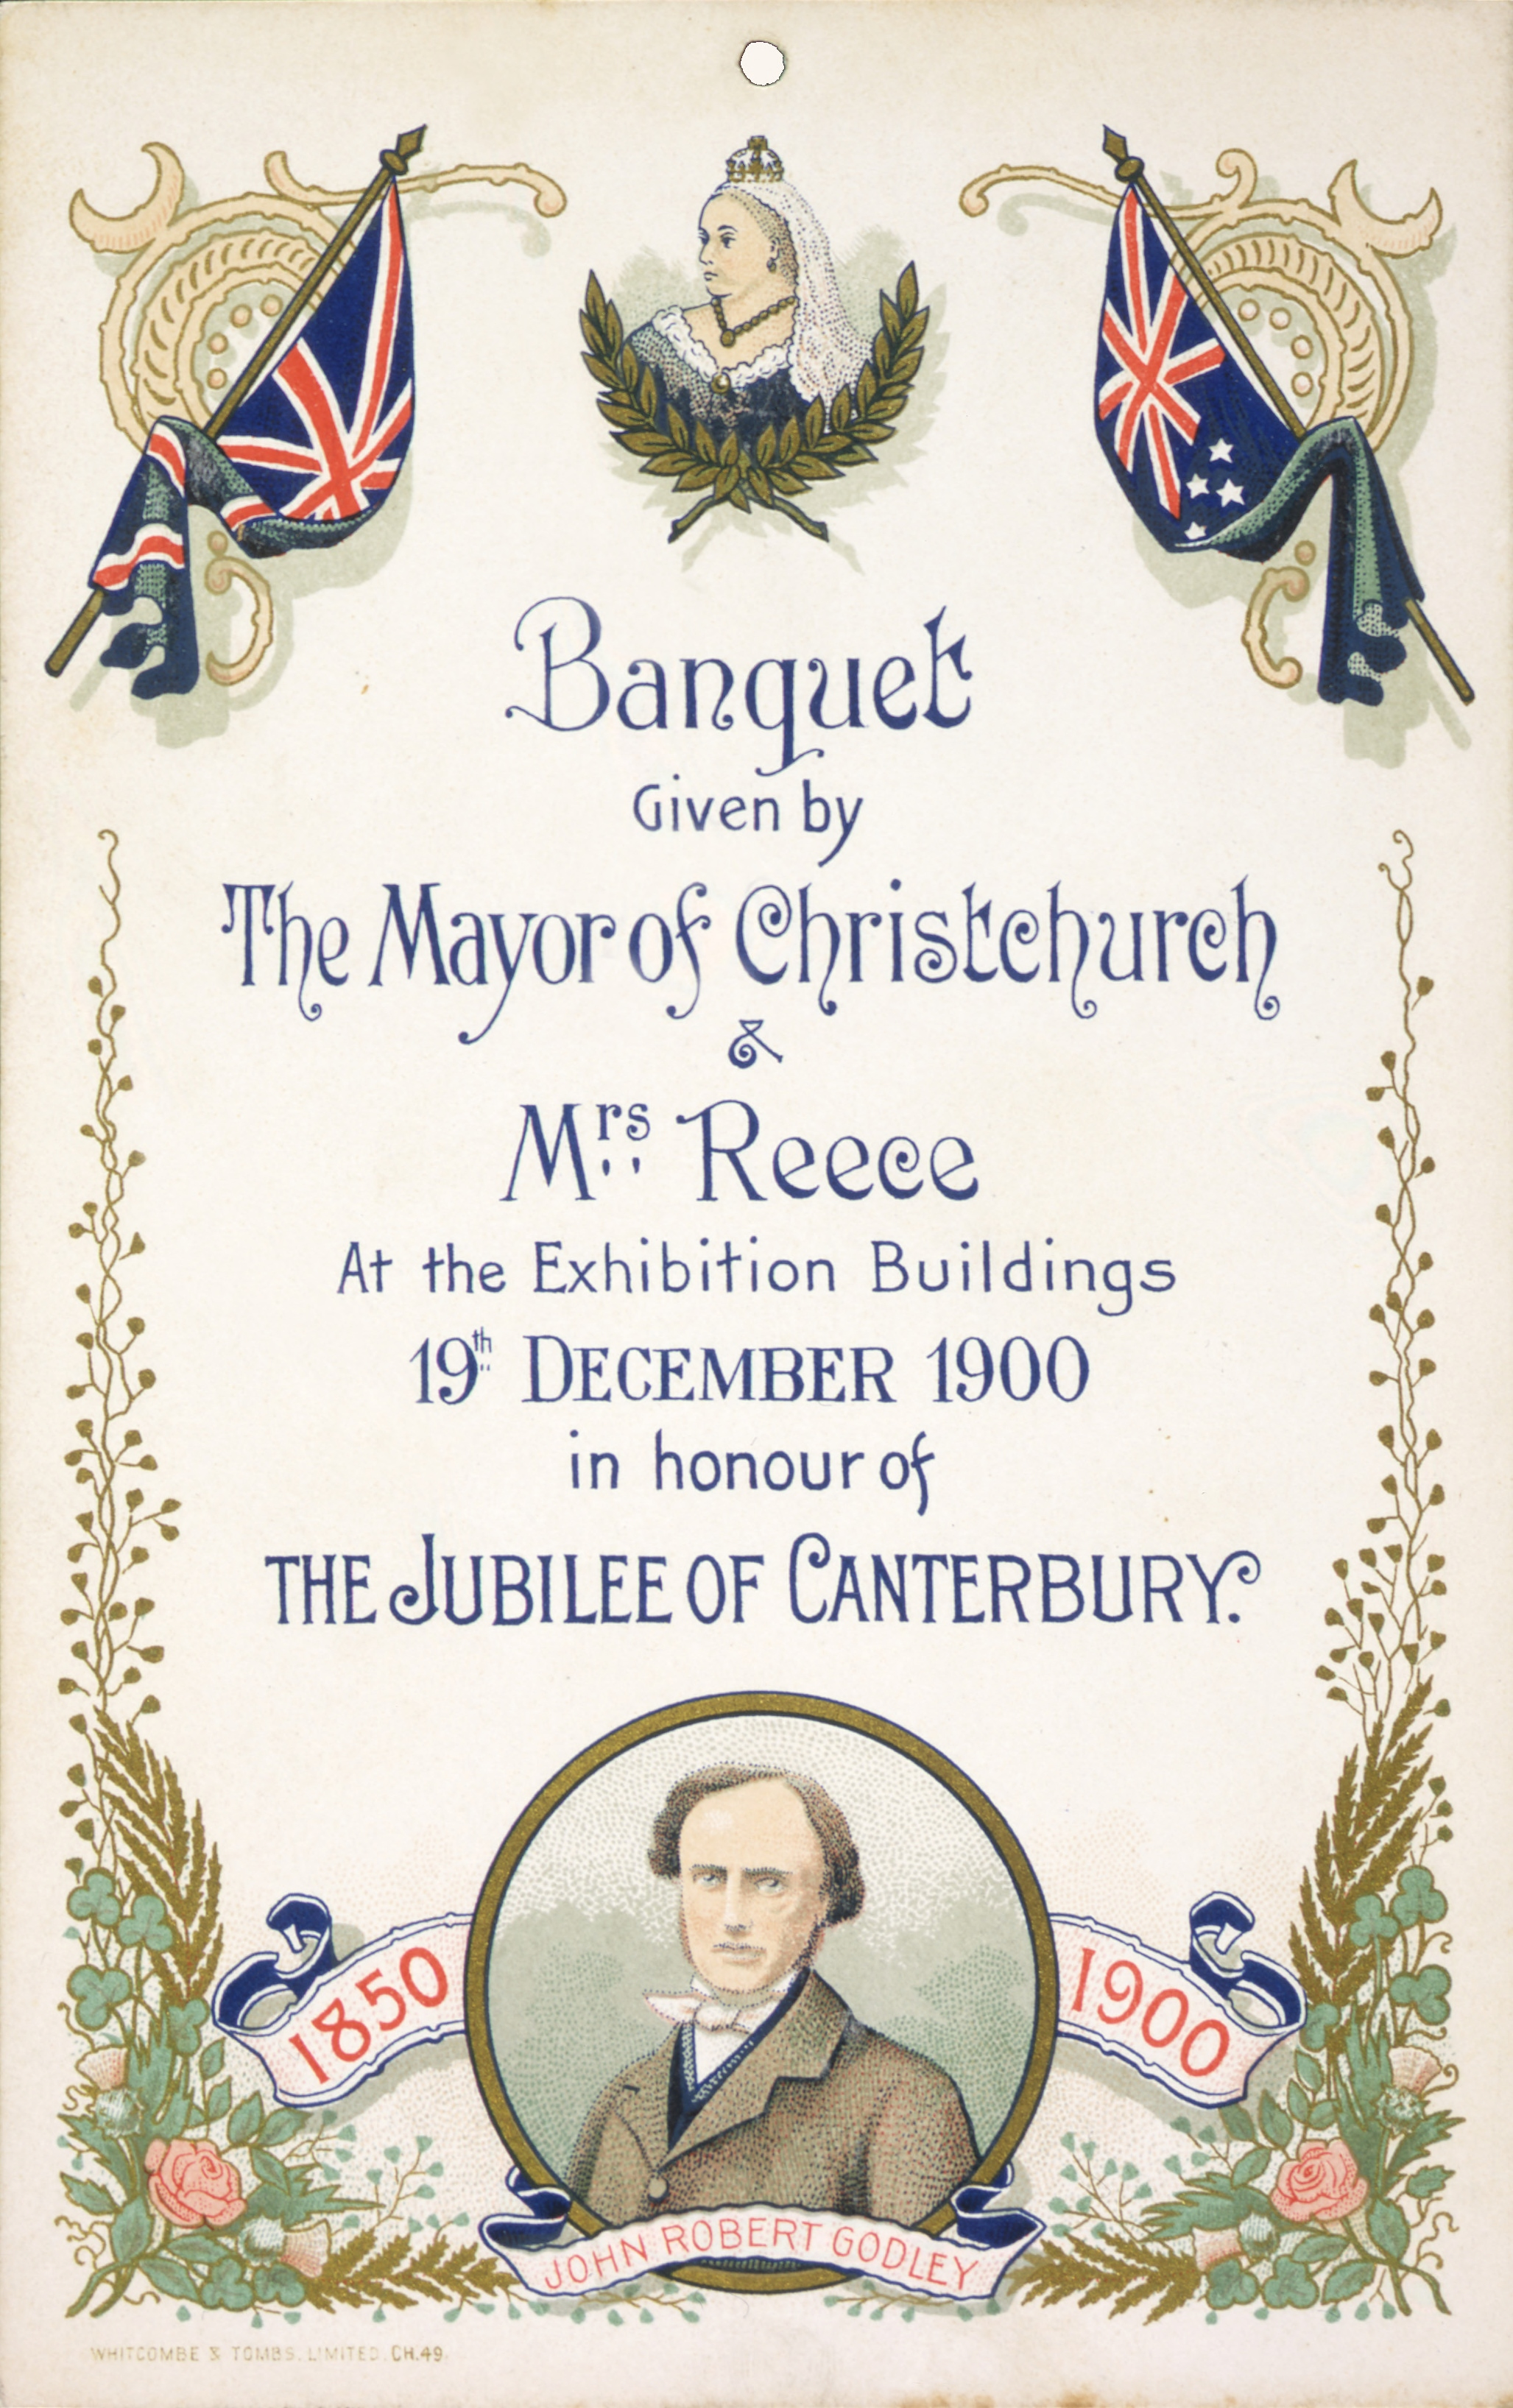 Filewilliam reece banquet invitation centennial celebrationsg filewilliam reece banquet invitation centennial celebrationsg stopboris Choice Image